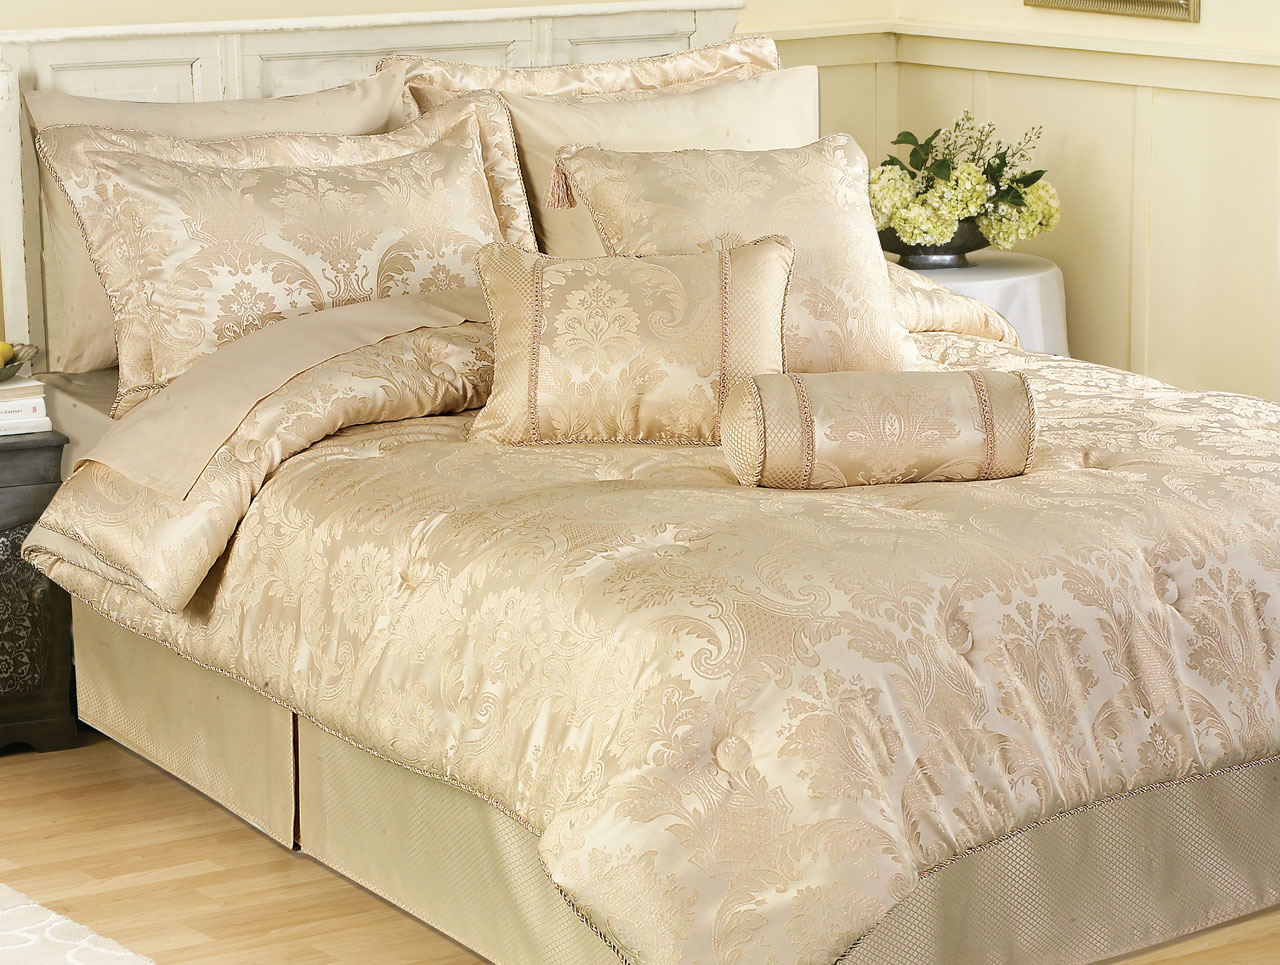 quilt beatrice shams design loom with please stitch product ivory duvet select copper color pick